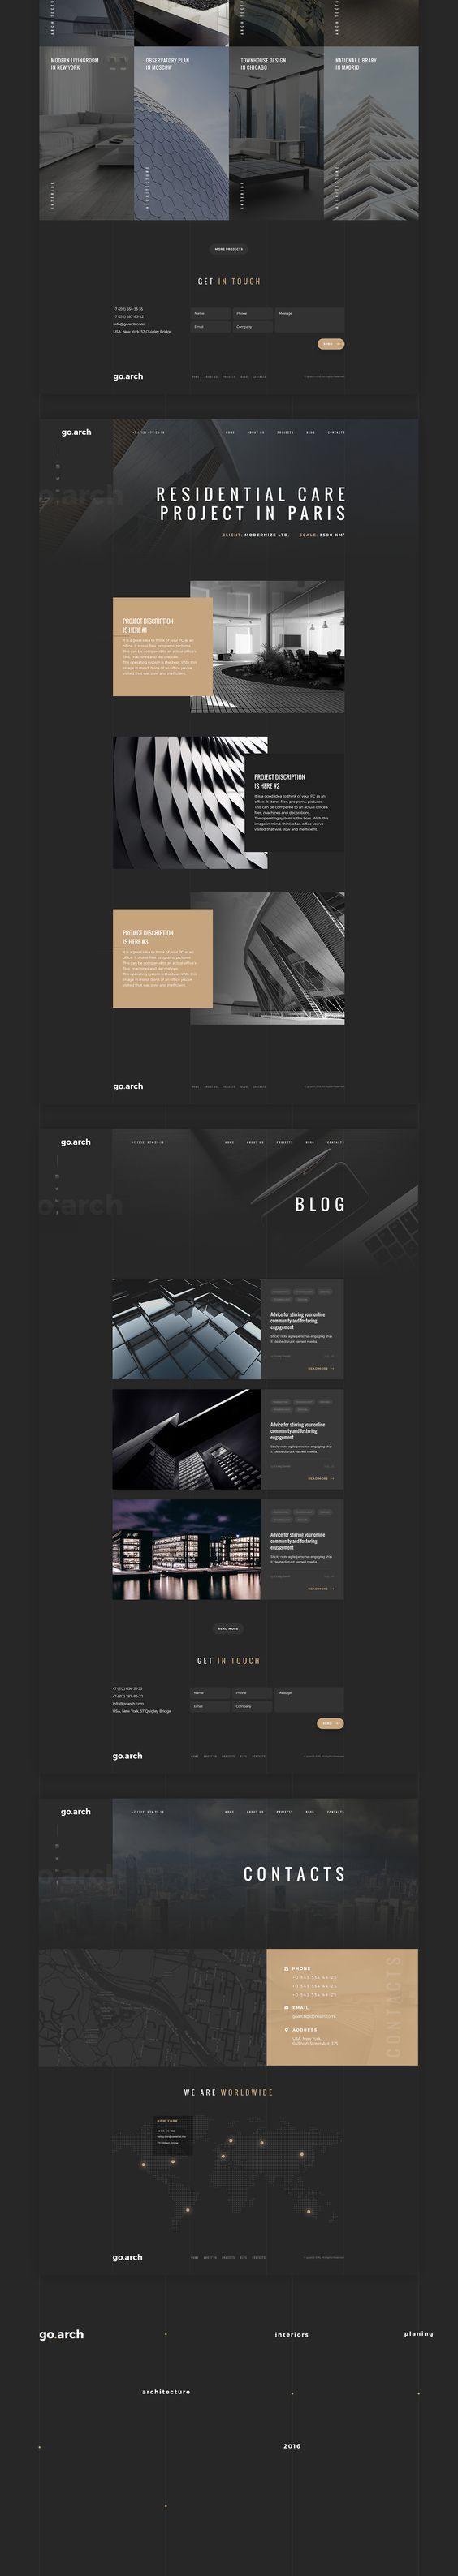 (43) Showcase and discover creative work on the world's leading online platform for creative industries.   wwwebdesign   Pinterest